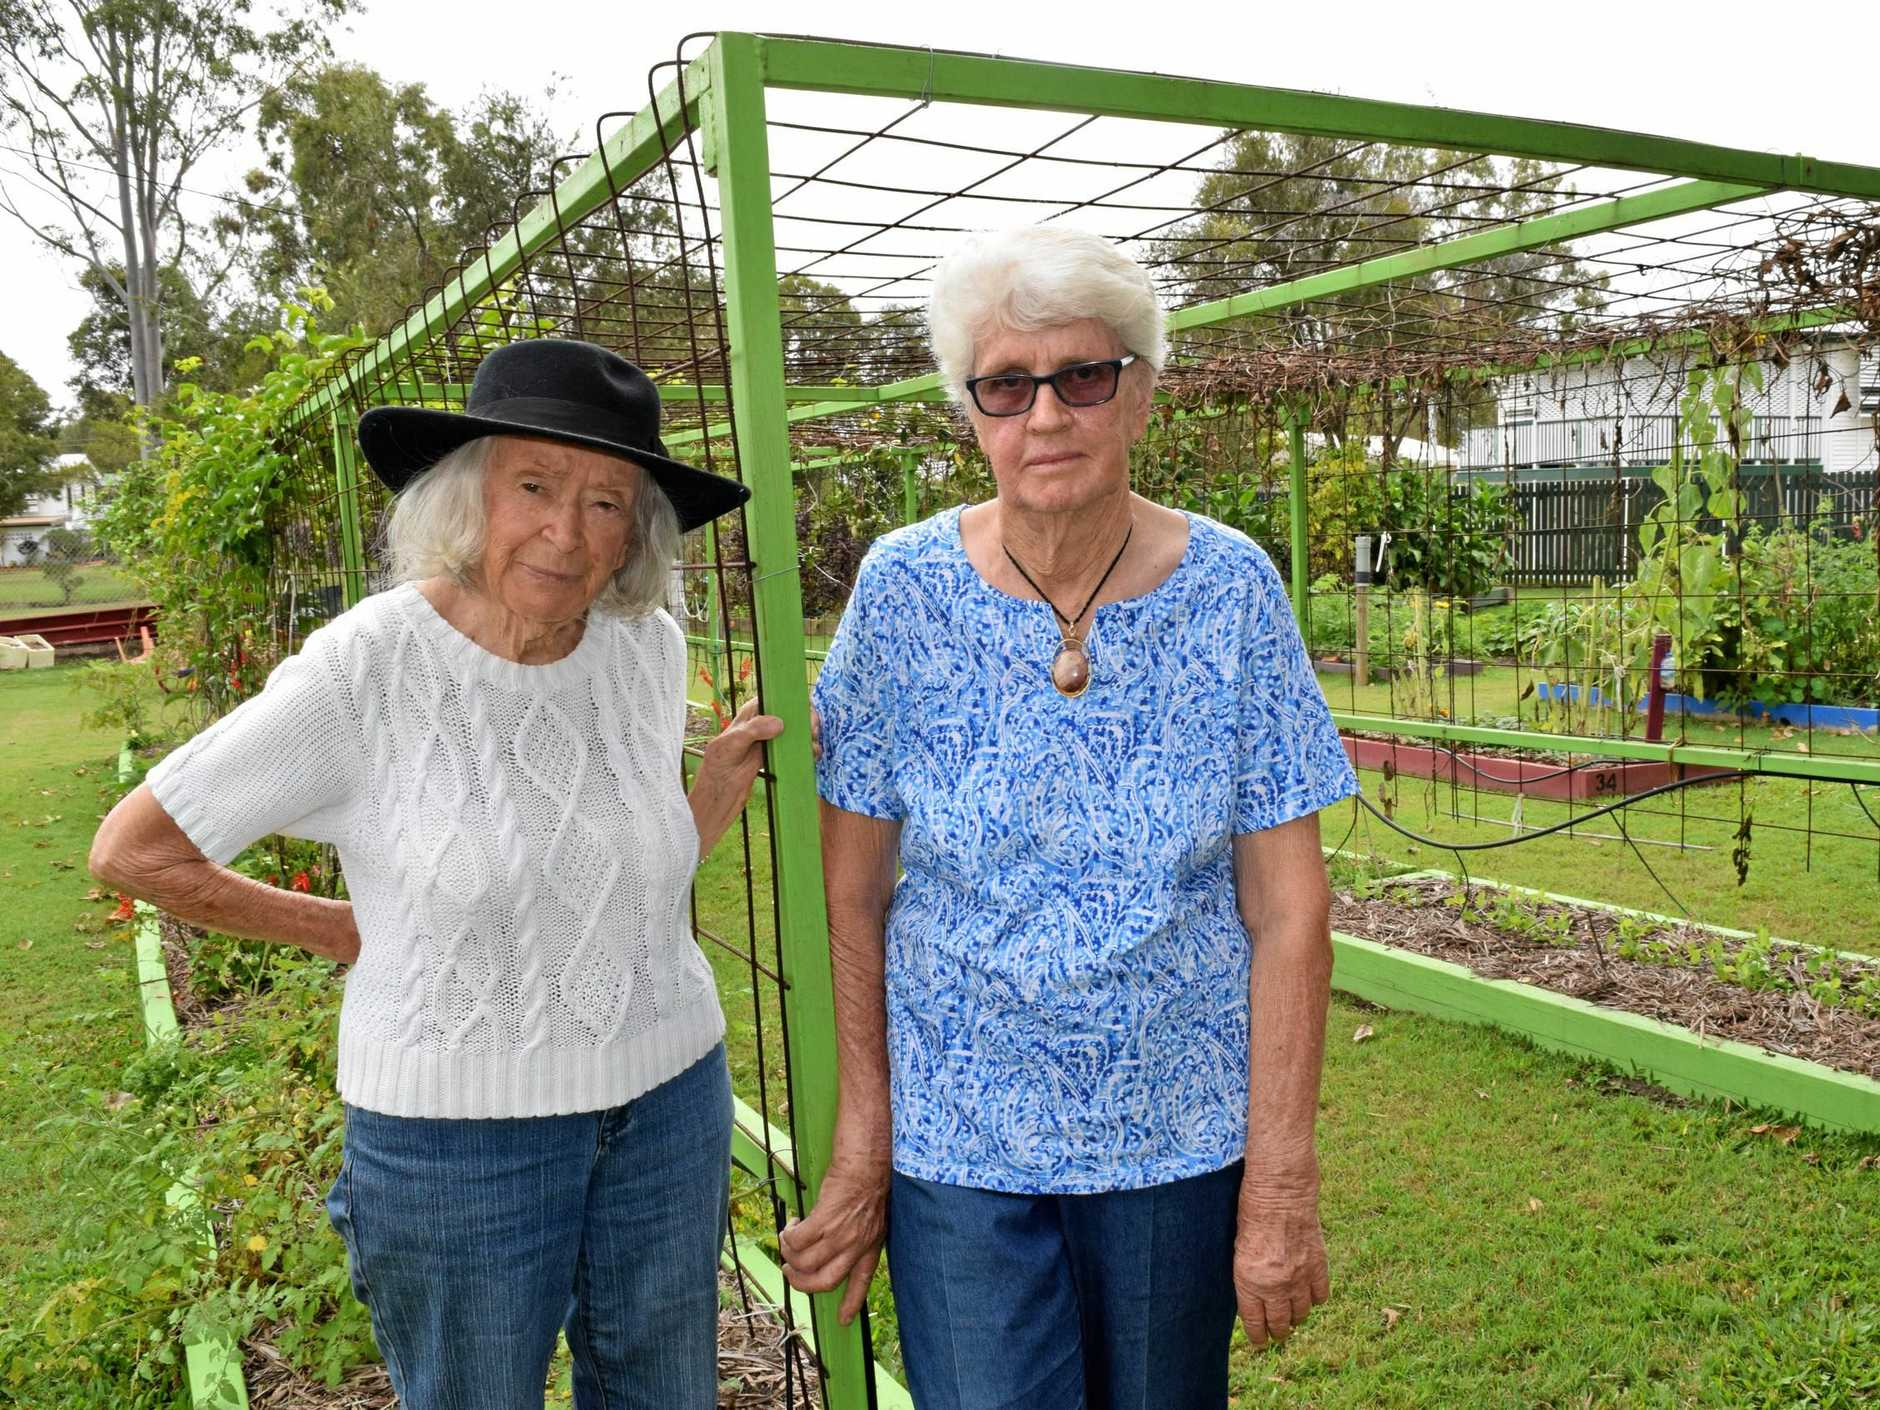 GARDENER'S WOES: Lupton Park Community Garden committee members Freda McLintock and Dot Leitner fear the garden may close because the committee is unable to afford a recent rates bill.